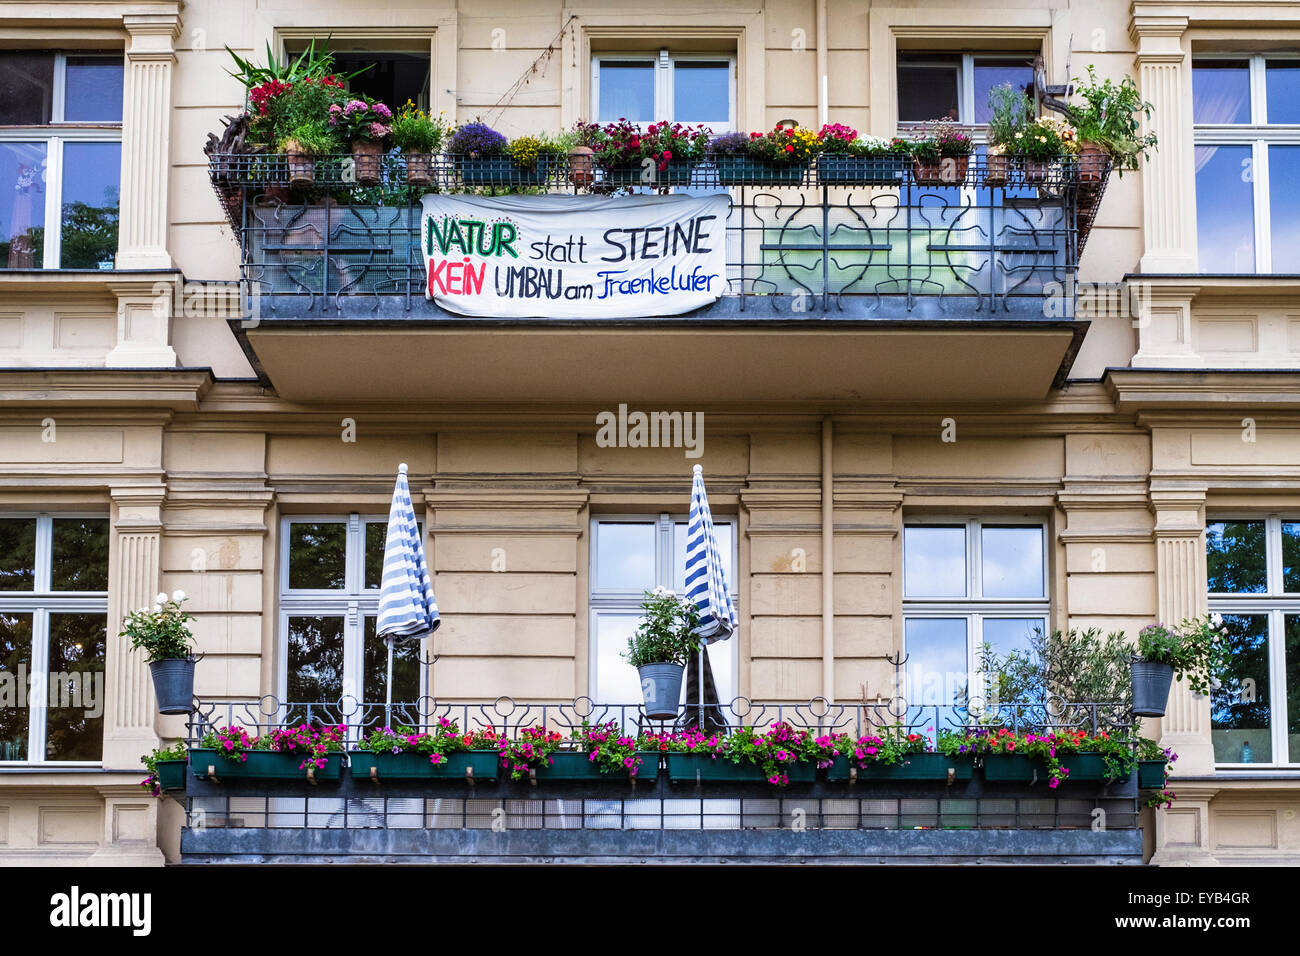 Berlin Apartments With Balconies And Sign Protesting Riverside  Re Development Next To Landwehrkanal, Kreuzberg